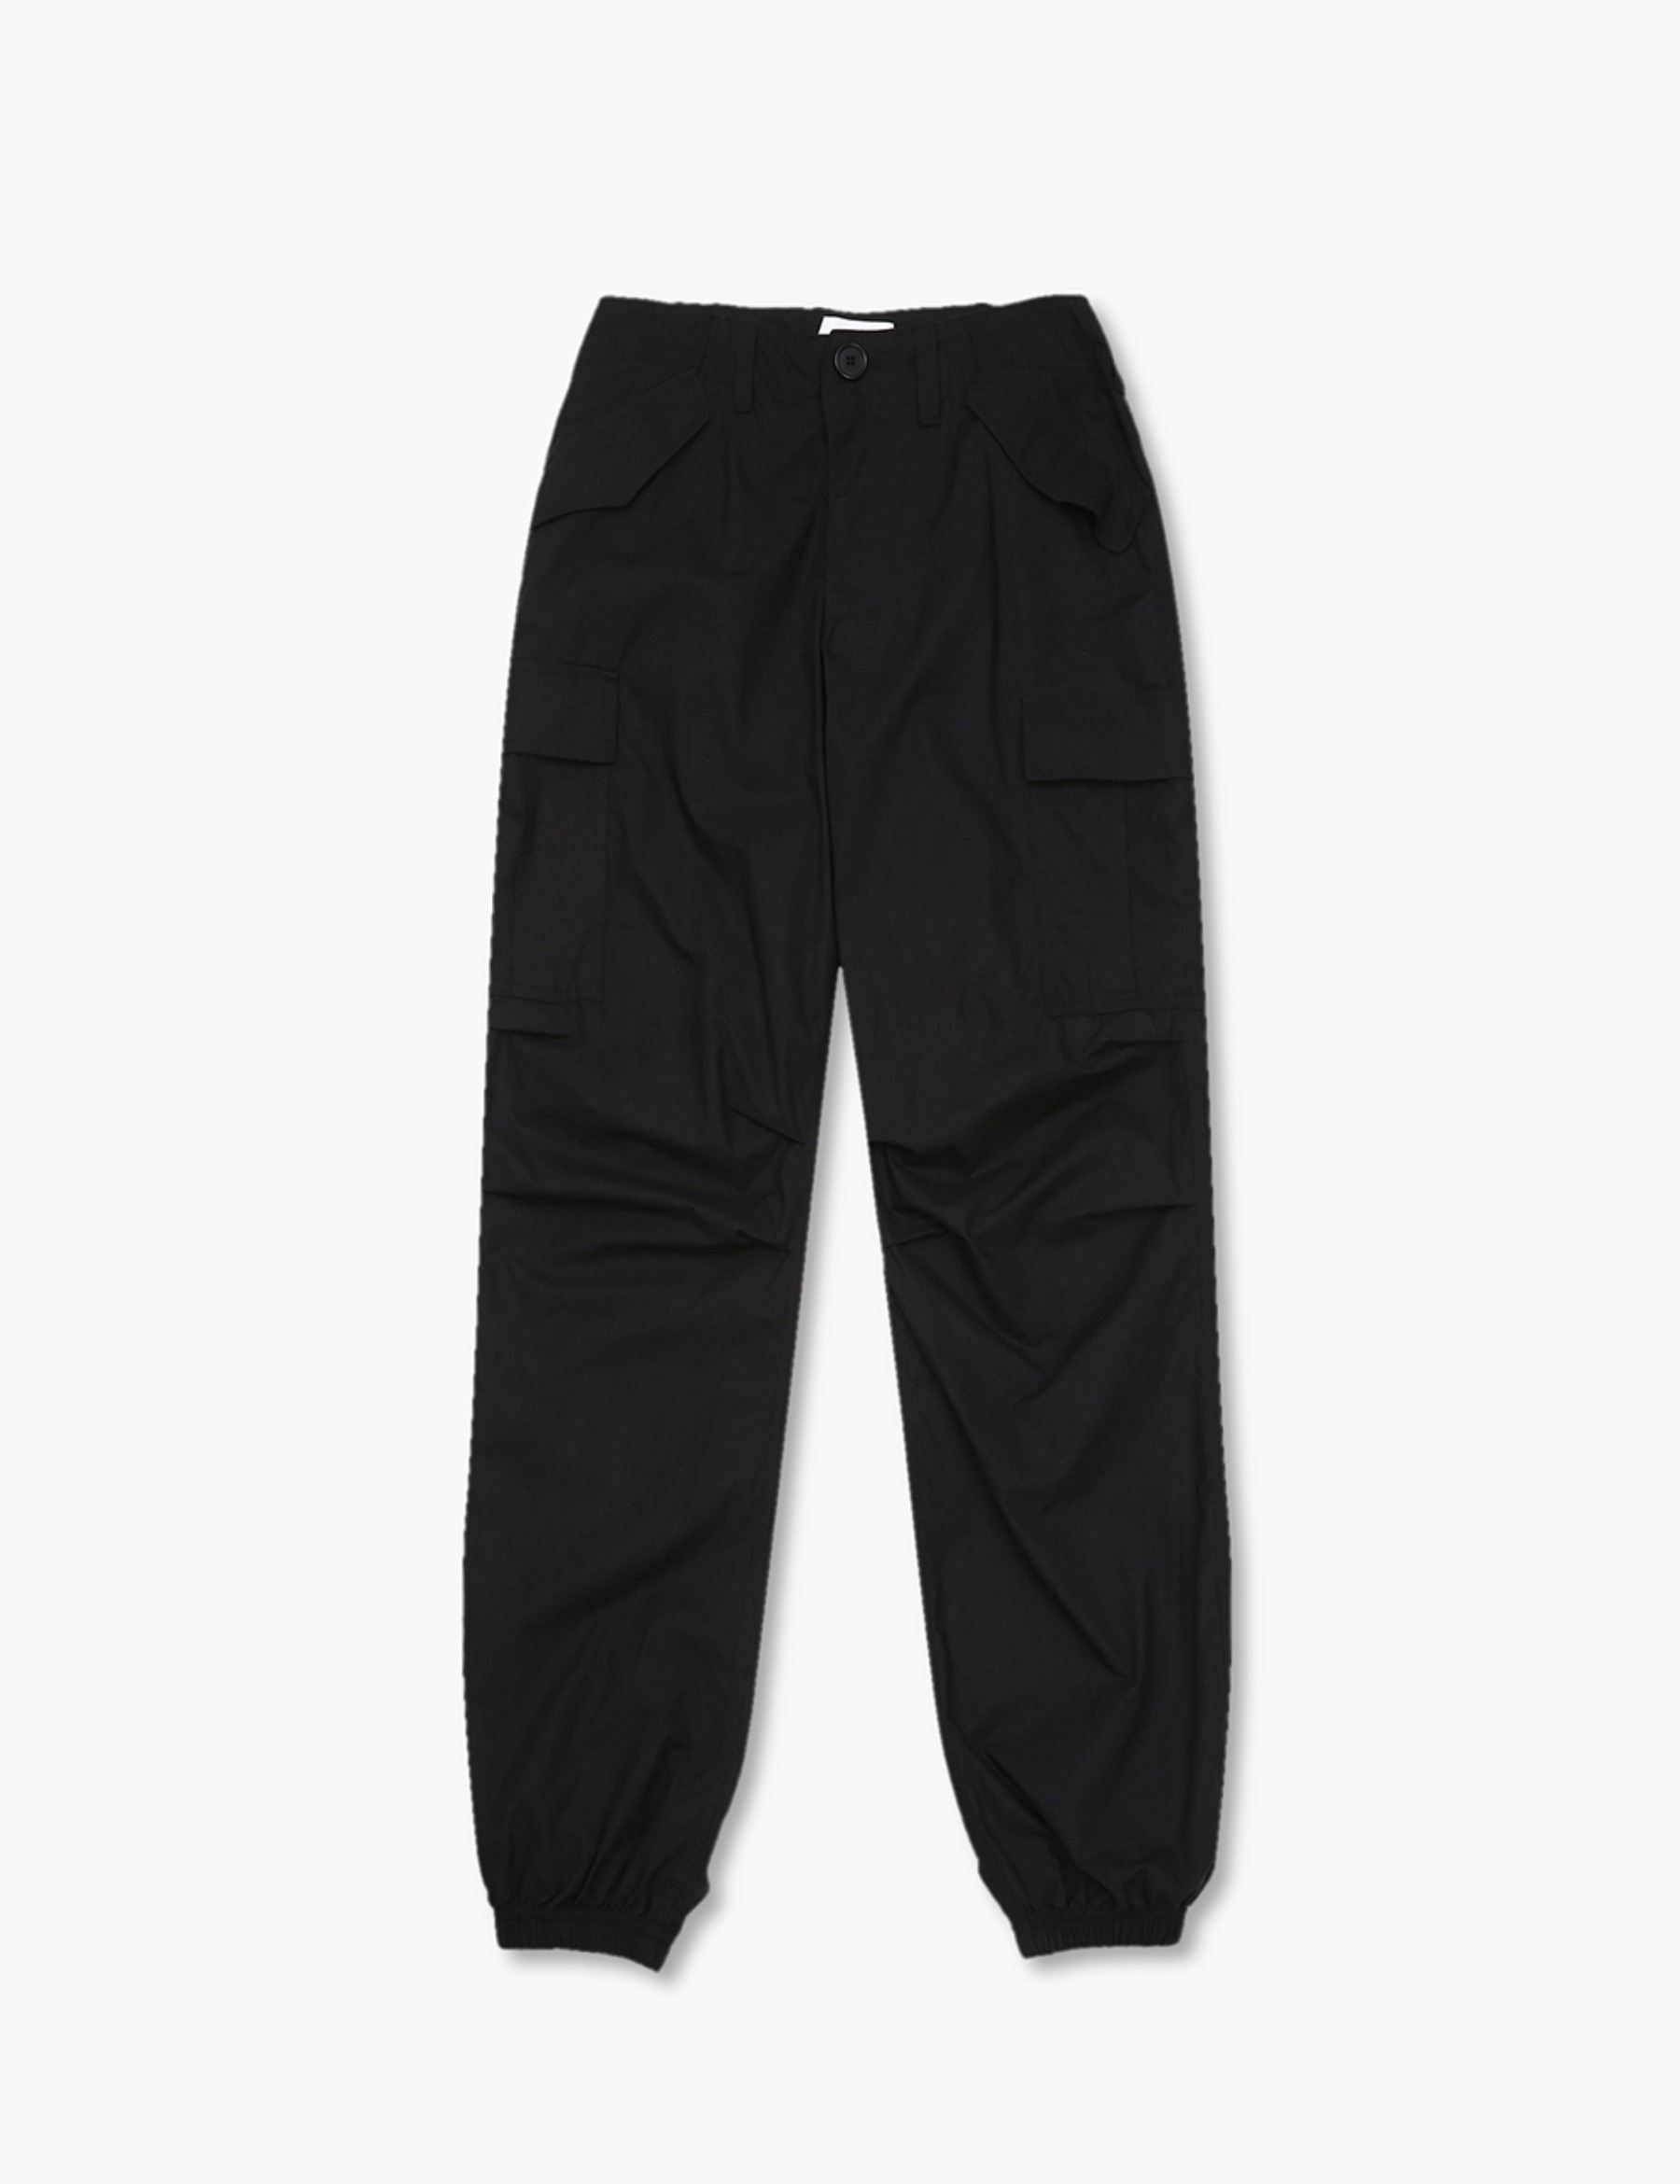 COTTON POPLIN M65 CARGO PANTS